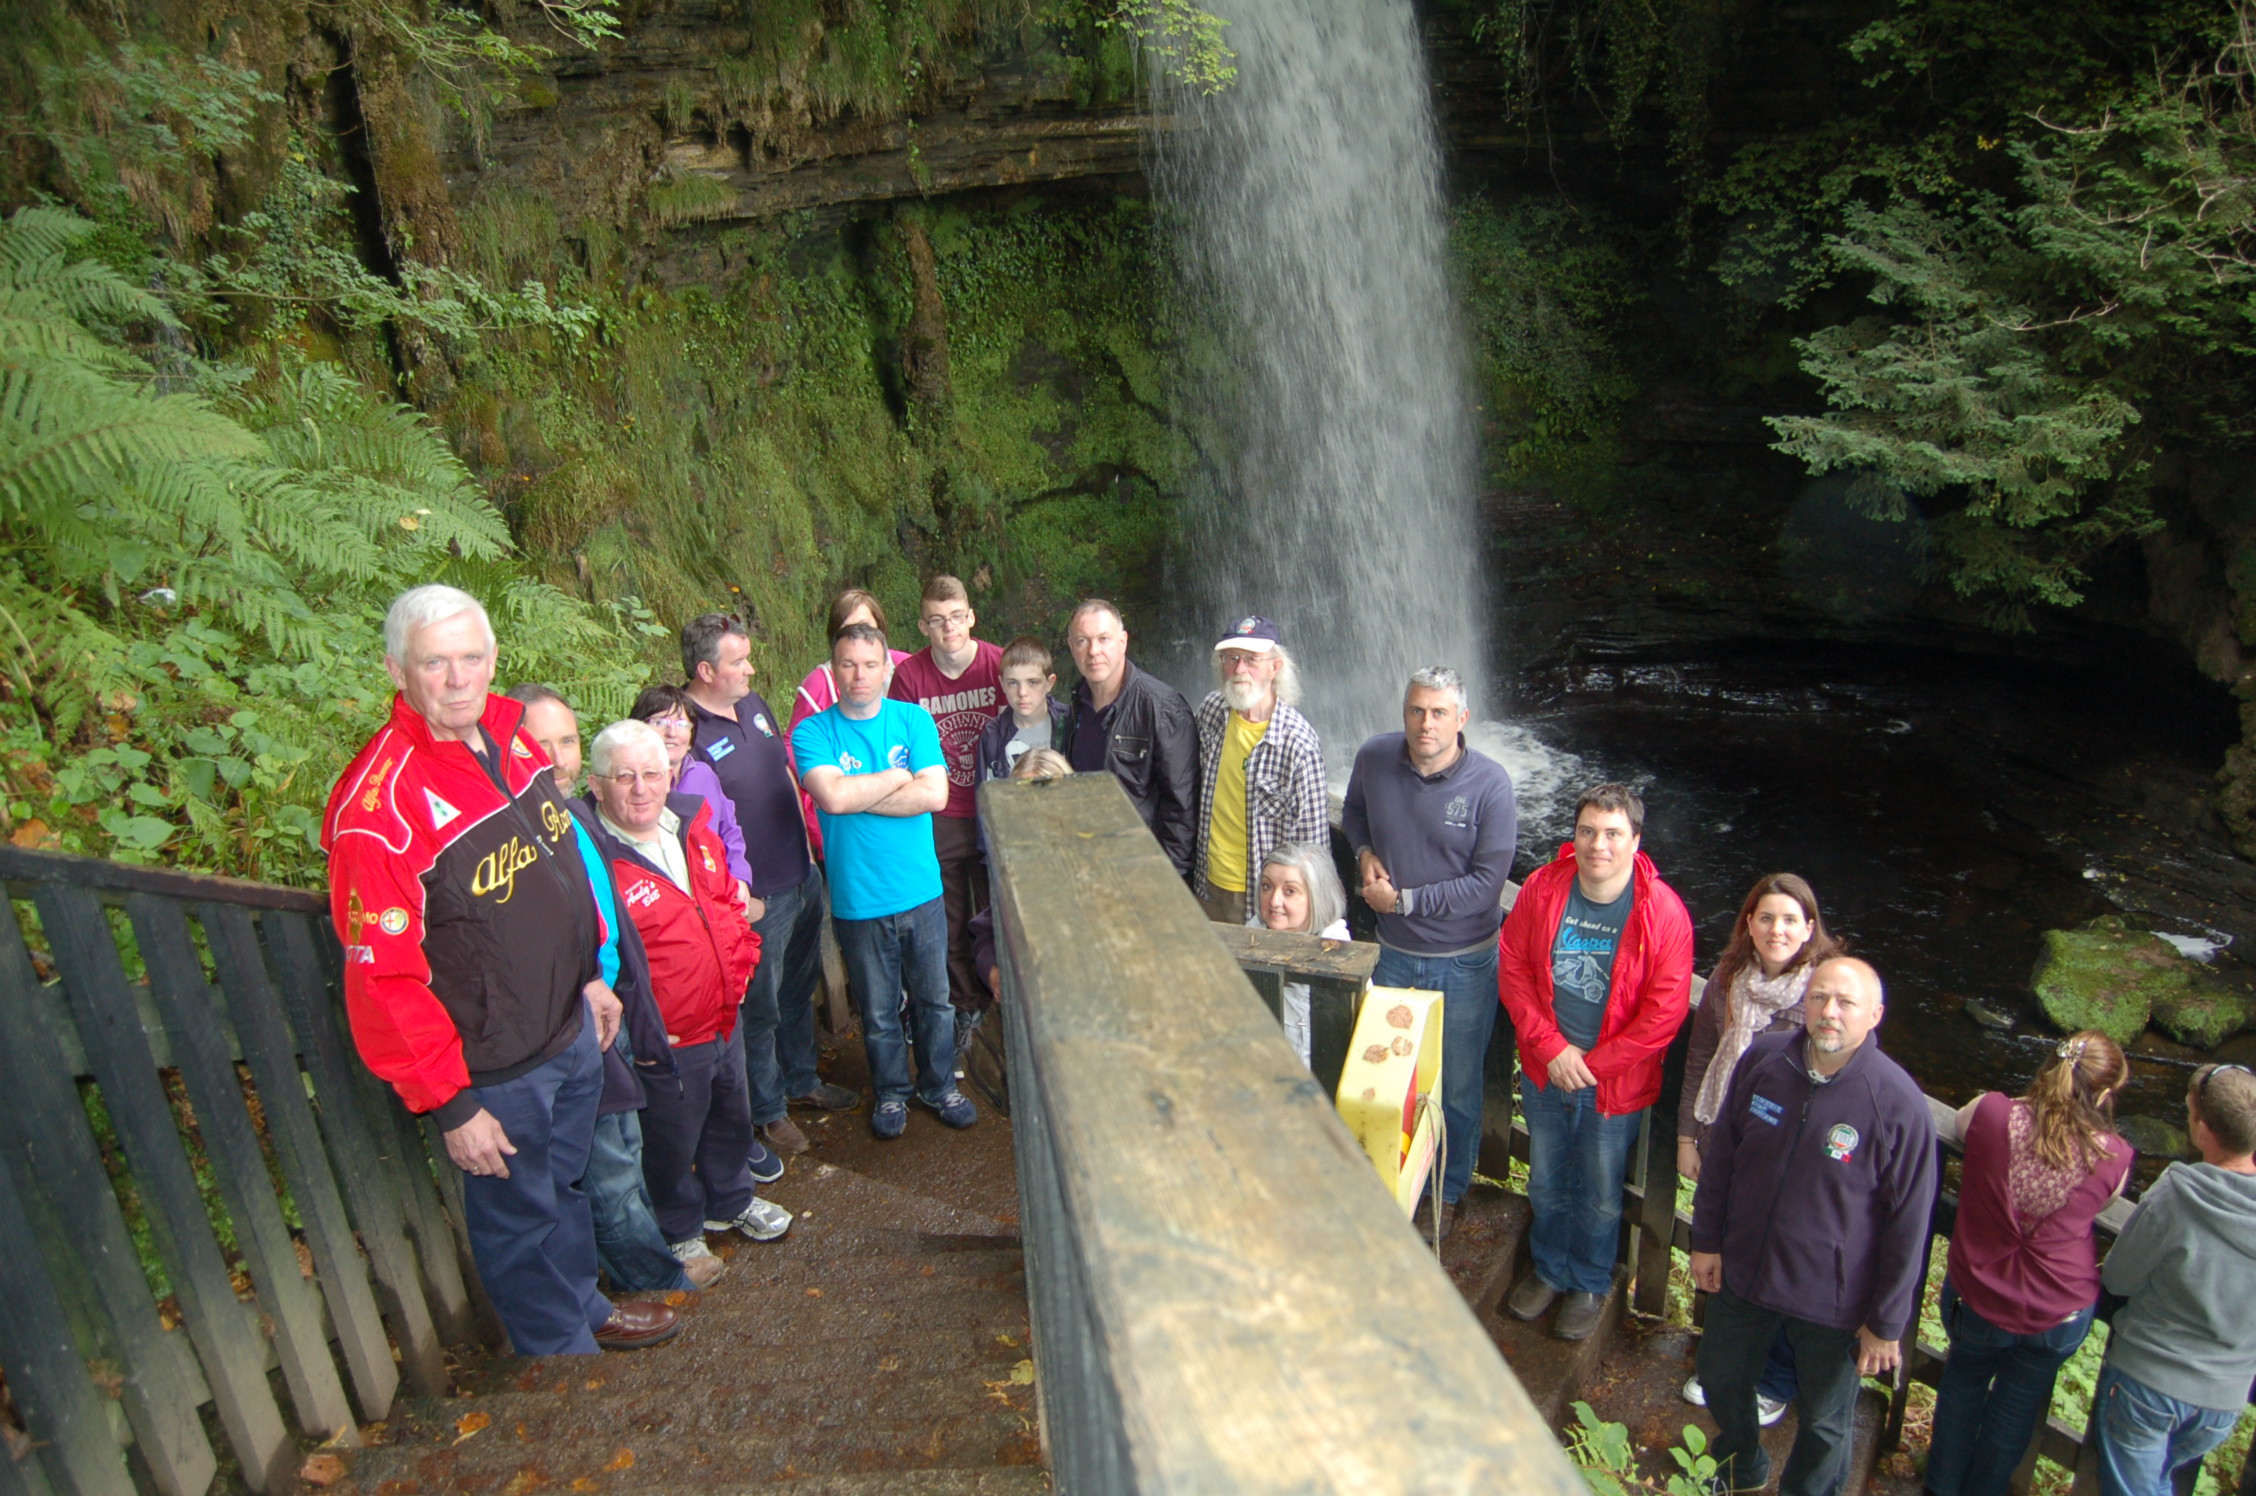 Group at Glencar Waterfall